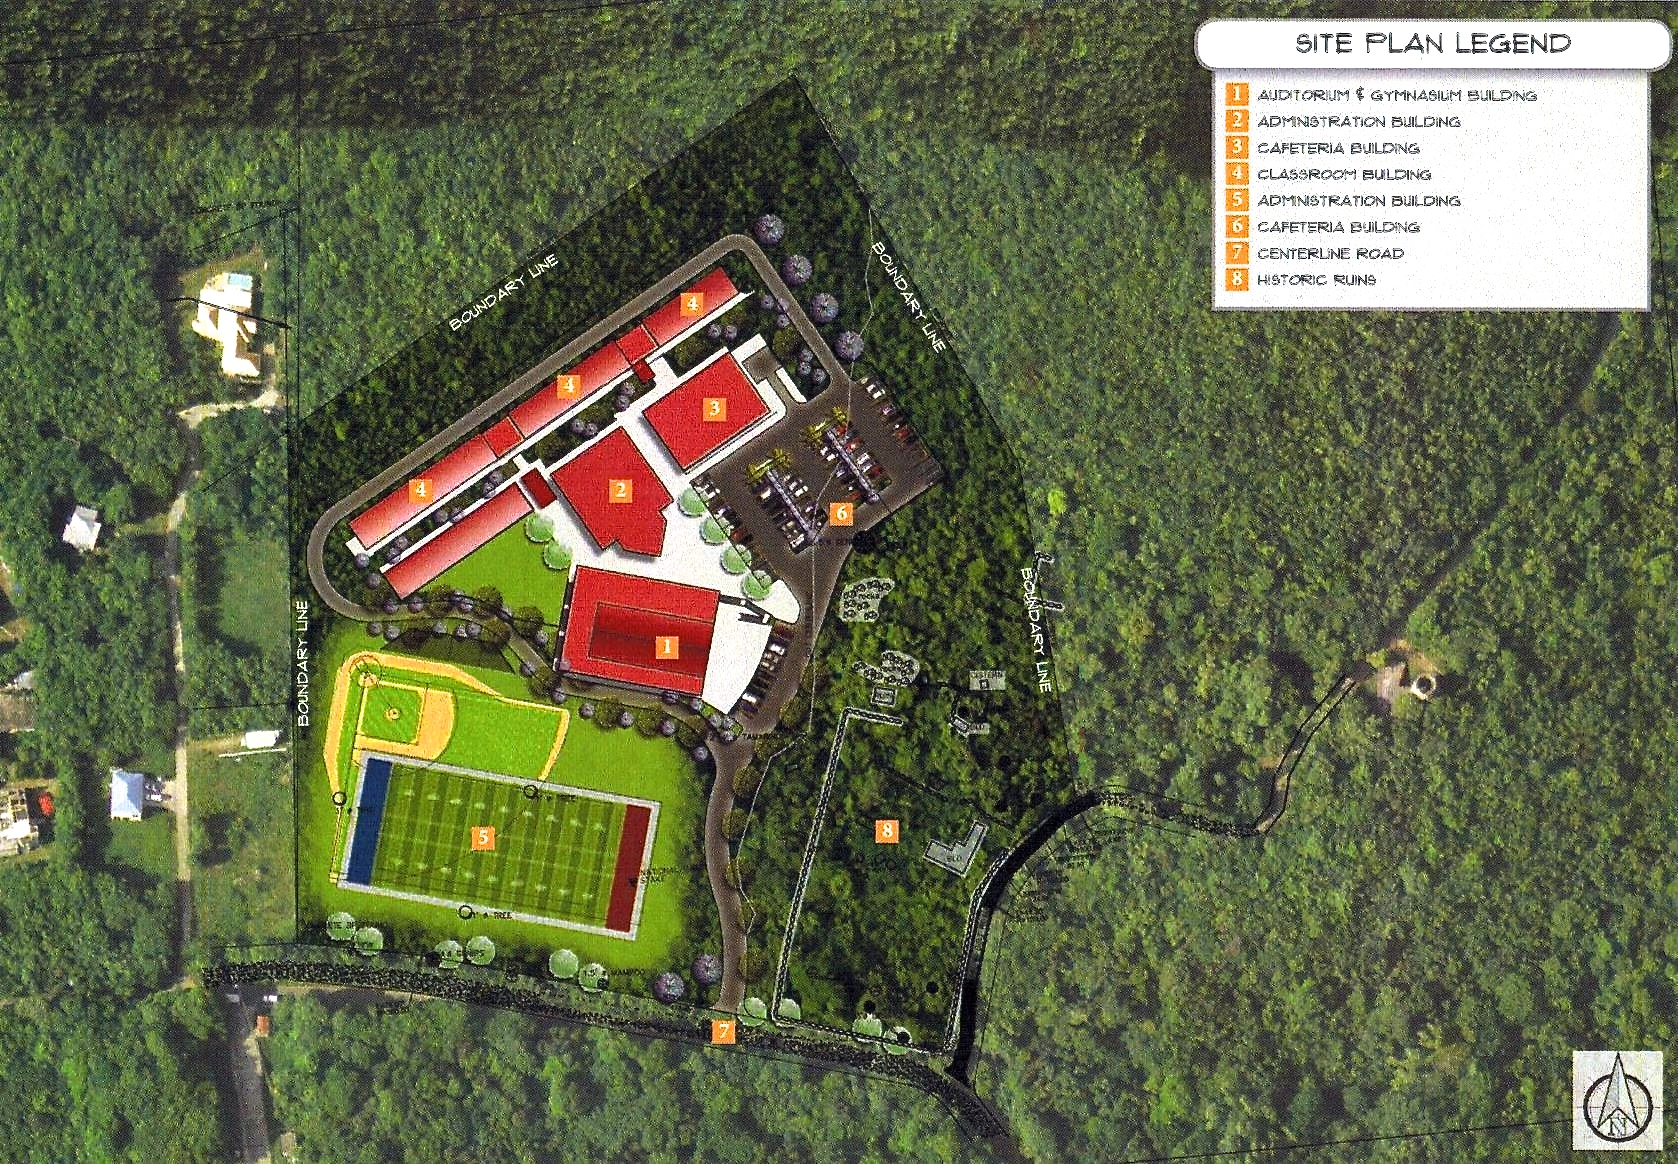 The site plan of the proposed St. John school in Catherineberg.